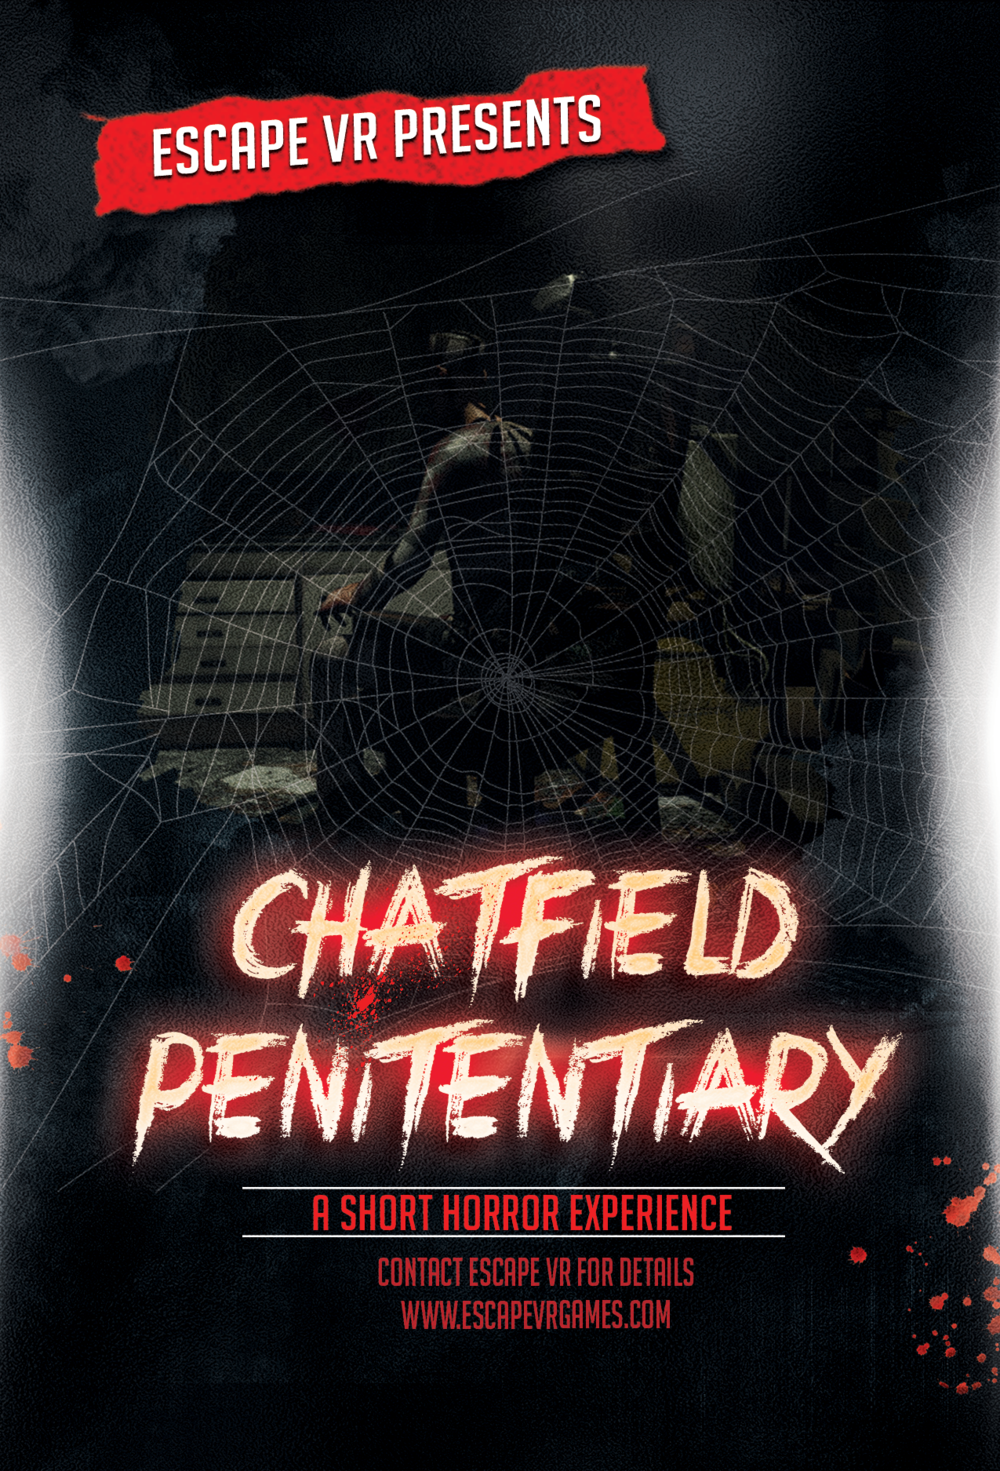 Frighten and Delight your customers - Chatfield Penitentiary is Escape VR's first high-throughput VR experience. Themed for the upcoming holiday season, Escape VR has created a 1-3 minute walking experience to be used alongside amusement and facility entertainment. The total system is highly portable and built to maximize revenue and promote social proof. Contact us for details on how you can integrate Chatfield Penitentiary into your business today!